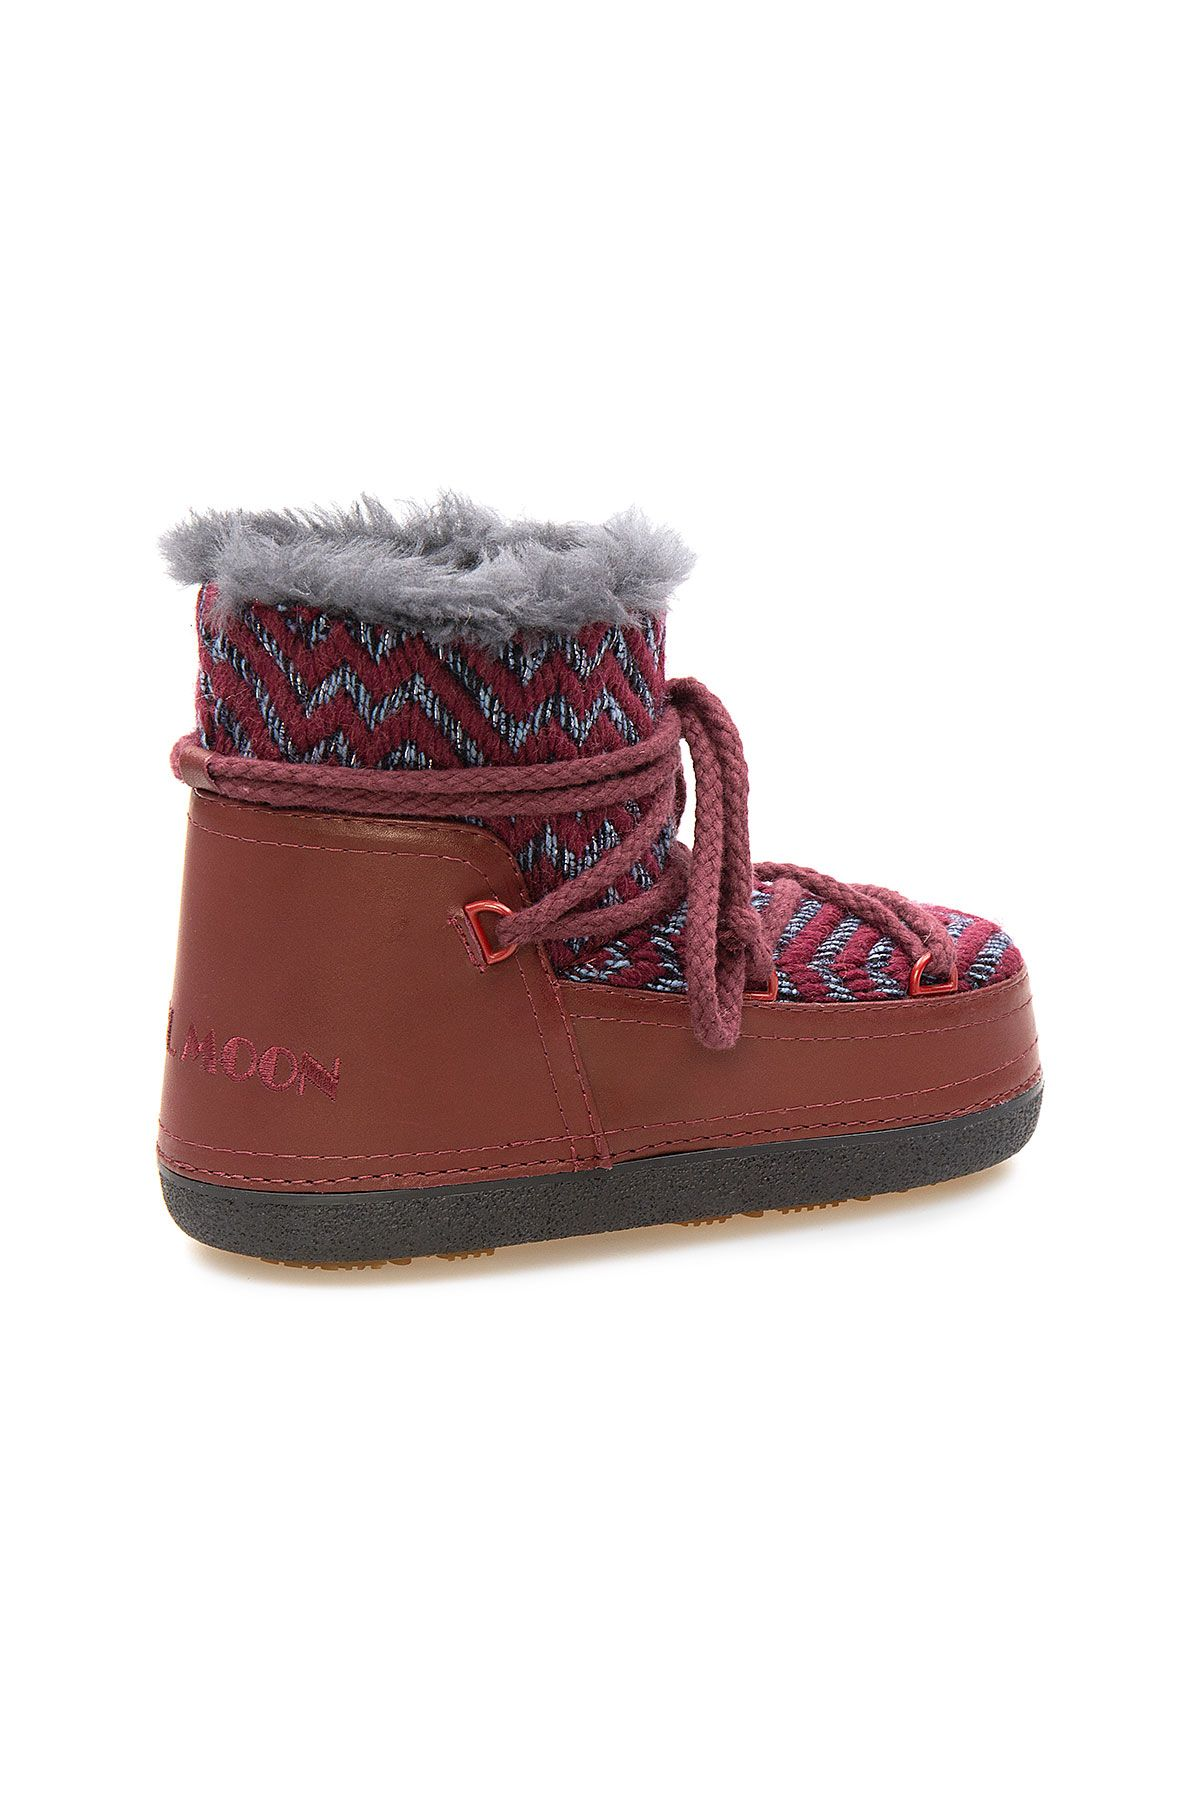 Cool Moon Genuine Sheepskin Lined Women's Snow Boots 251315 Claret red